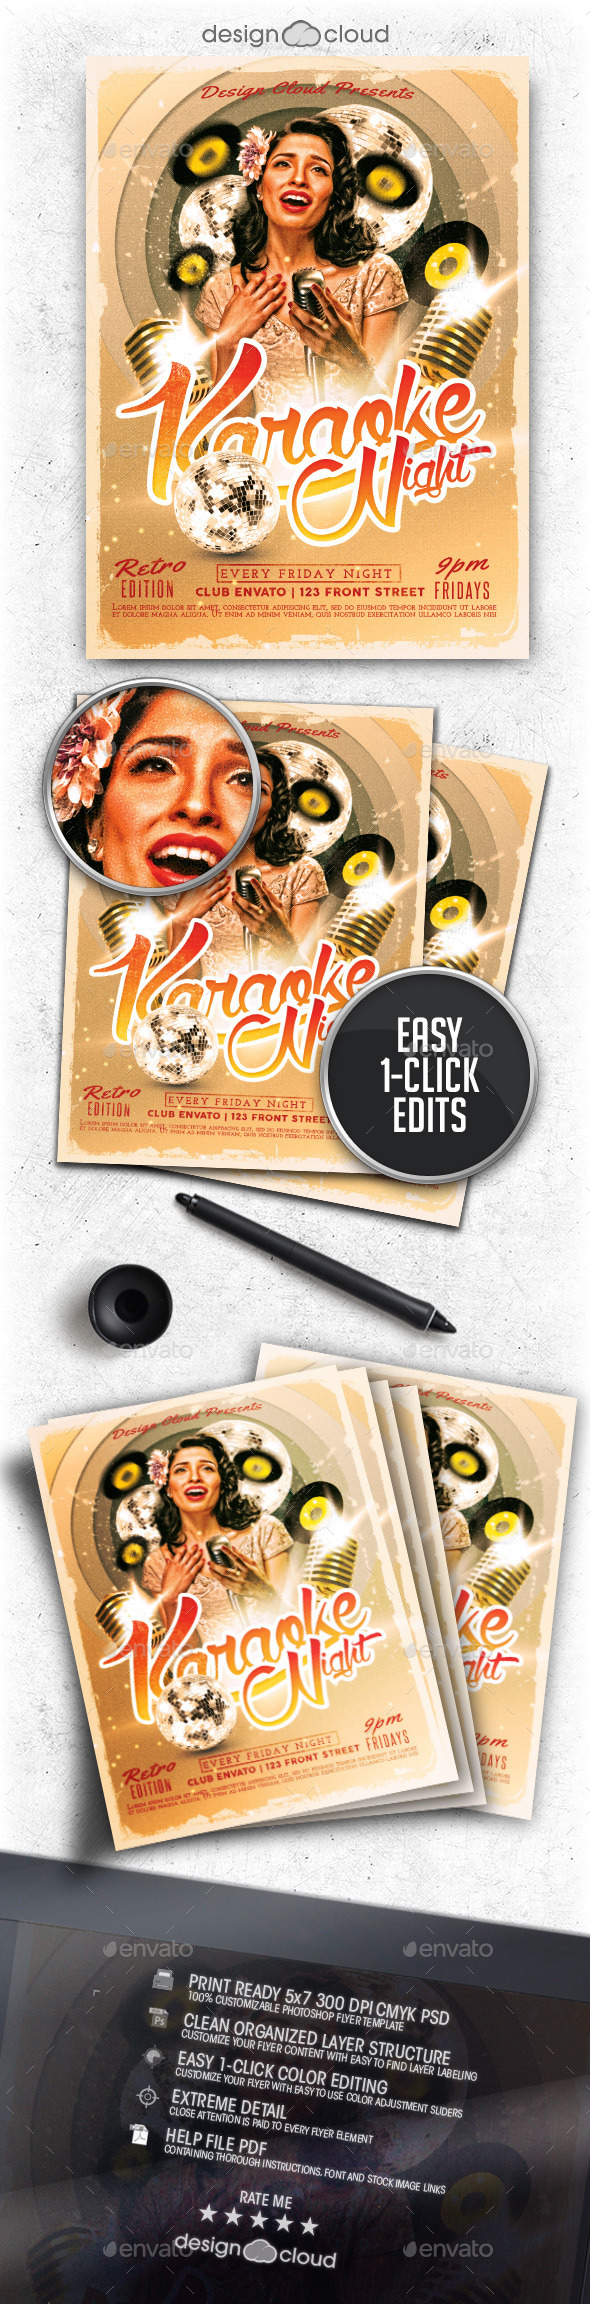 Retro Karaoke Night Flyer Template - Clubs & Parties Events